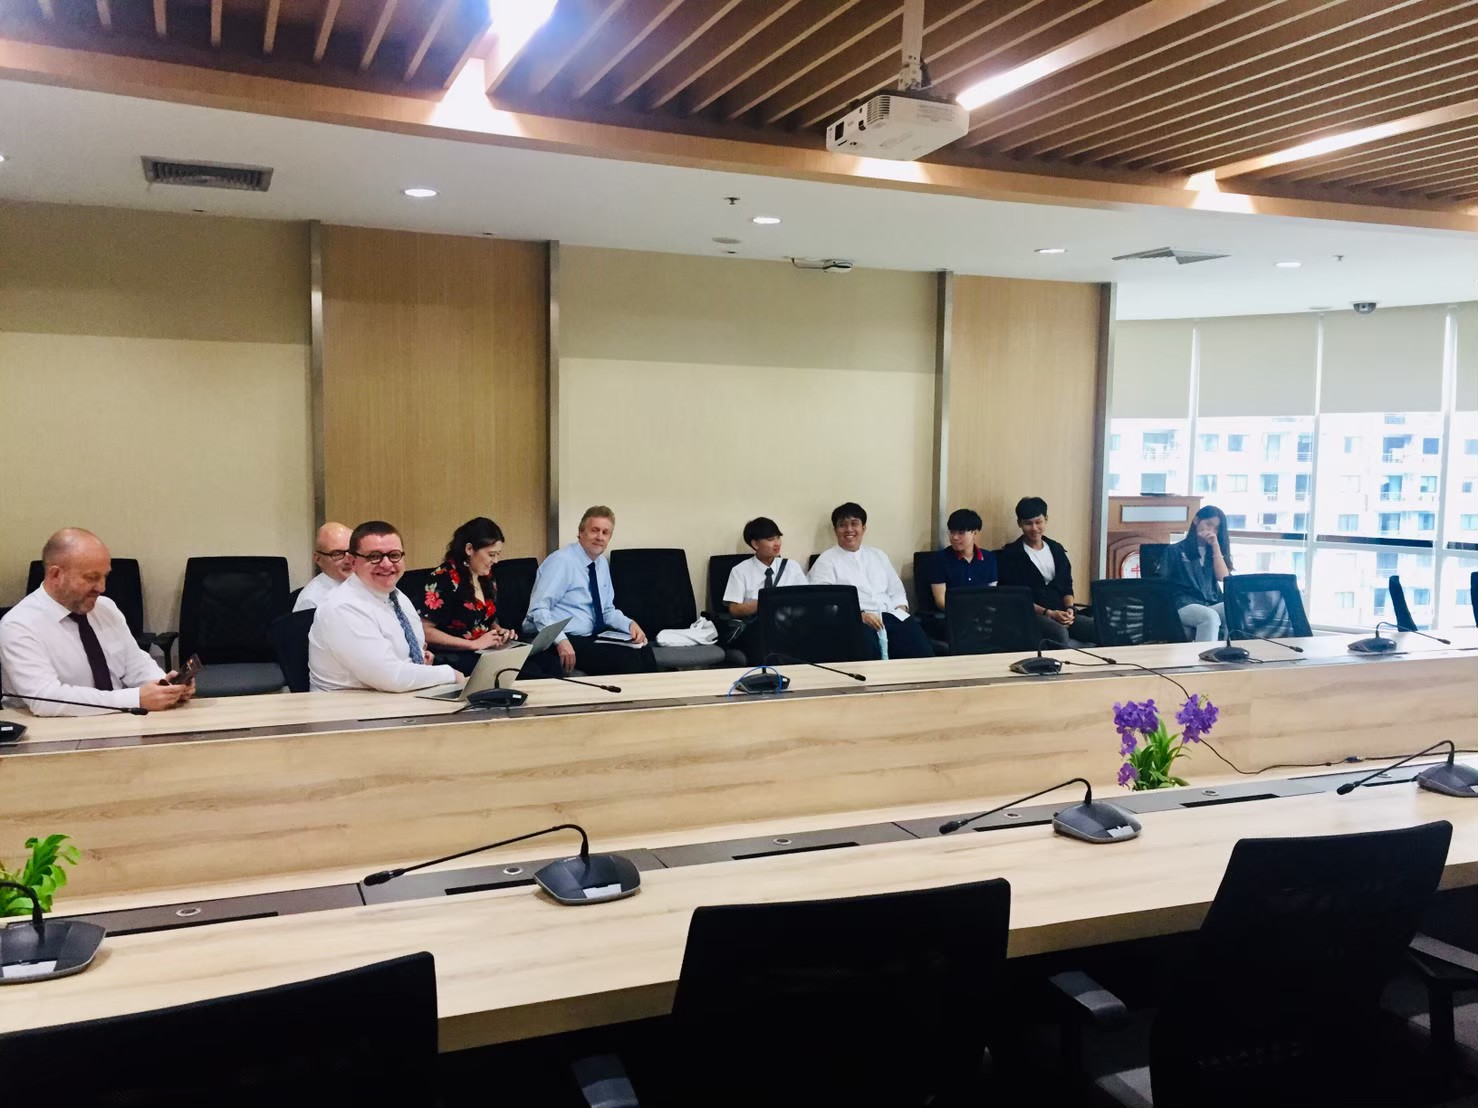 Meeting between International Engineering SWU and DMU 11 June 2019